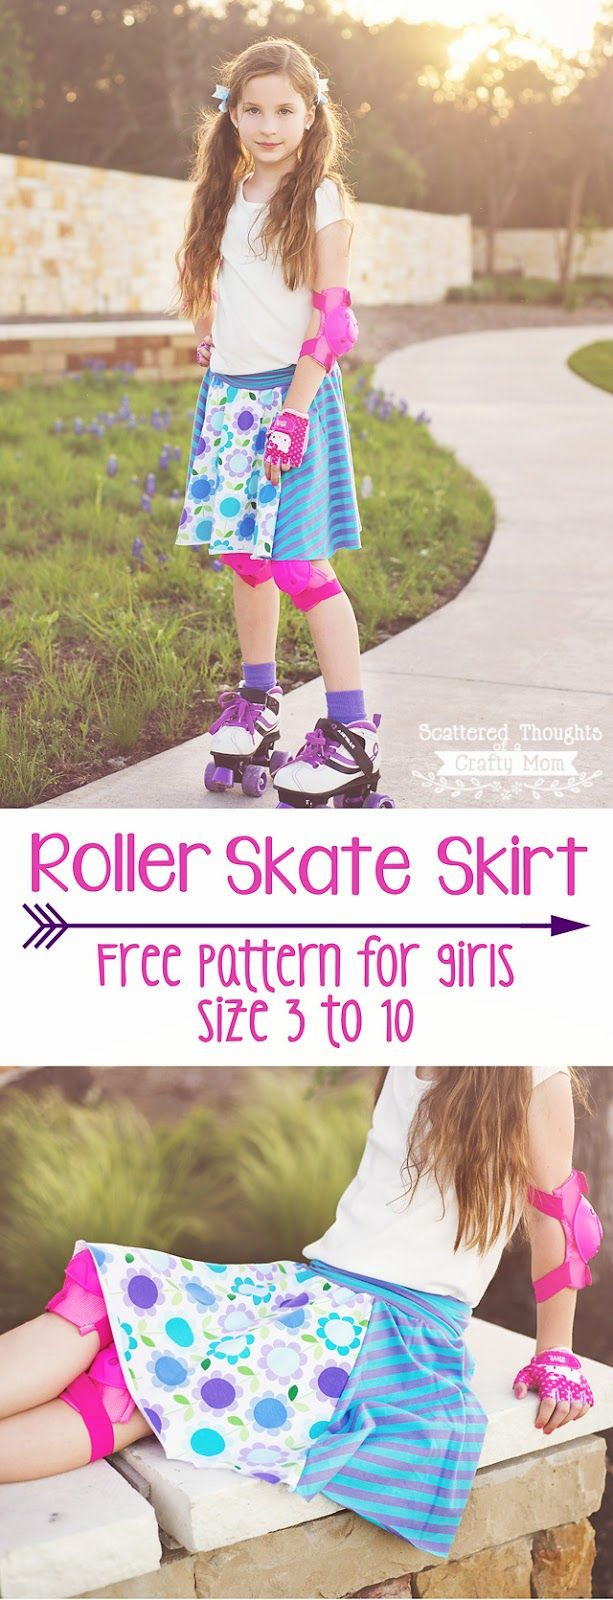 Sew this adorable Roller Skate Circle skirt for your little girl. Free printable pattern in sizes 3 to 10.